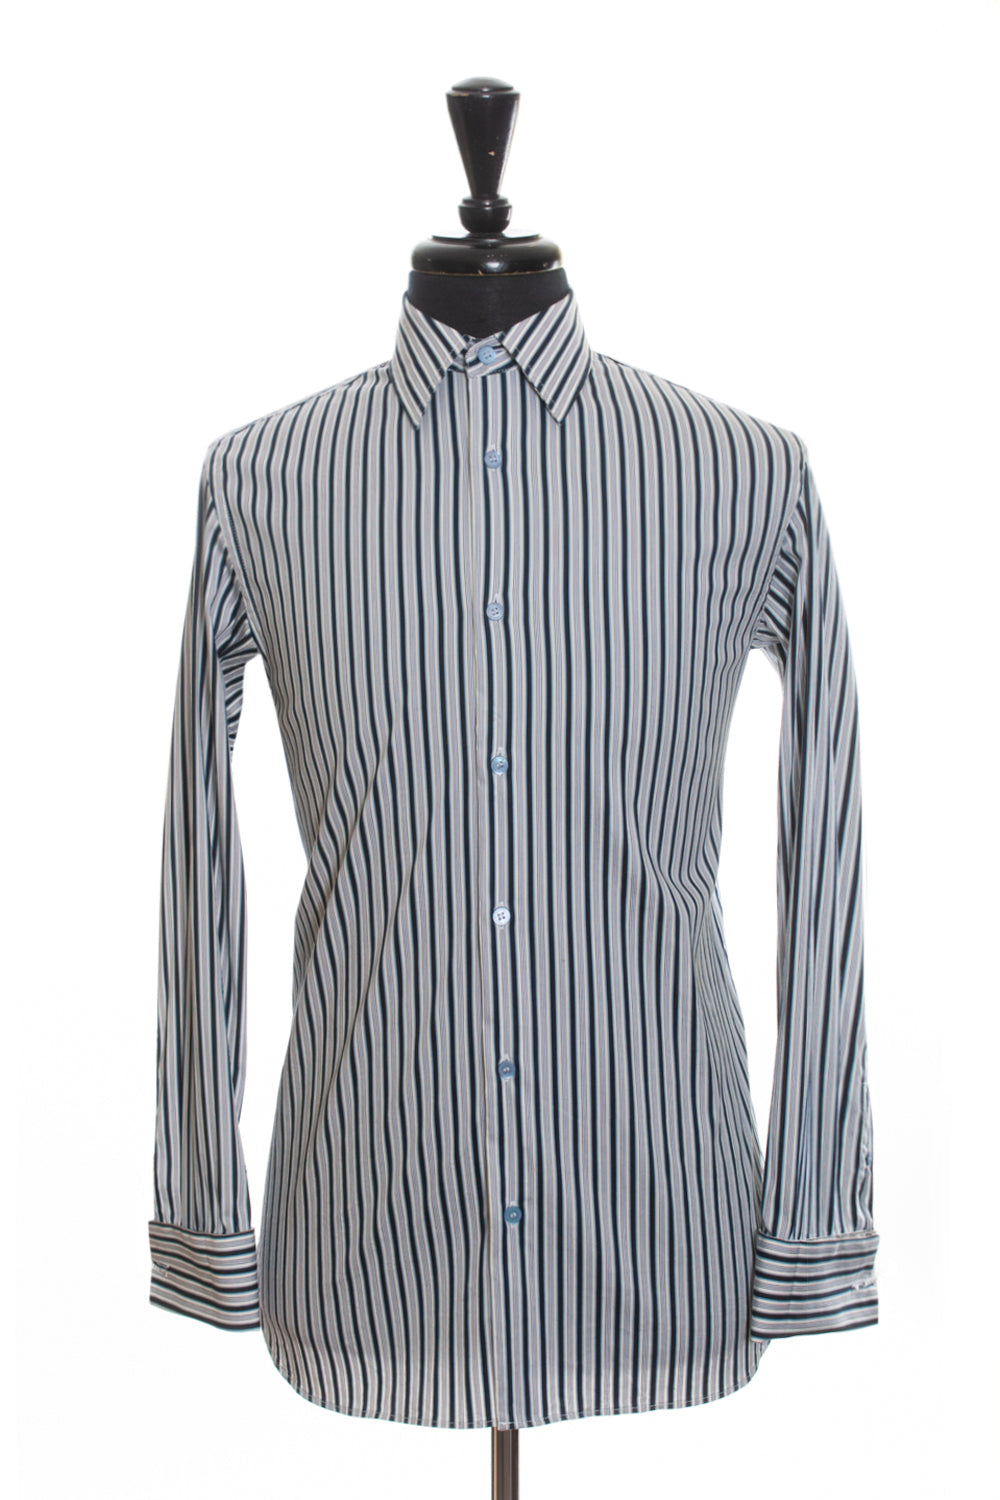 Ted Baker Navy Blue Striped French Cuff Shirt for Luxmrkt.com Menswear Consignment Edmonton